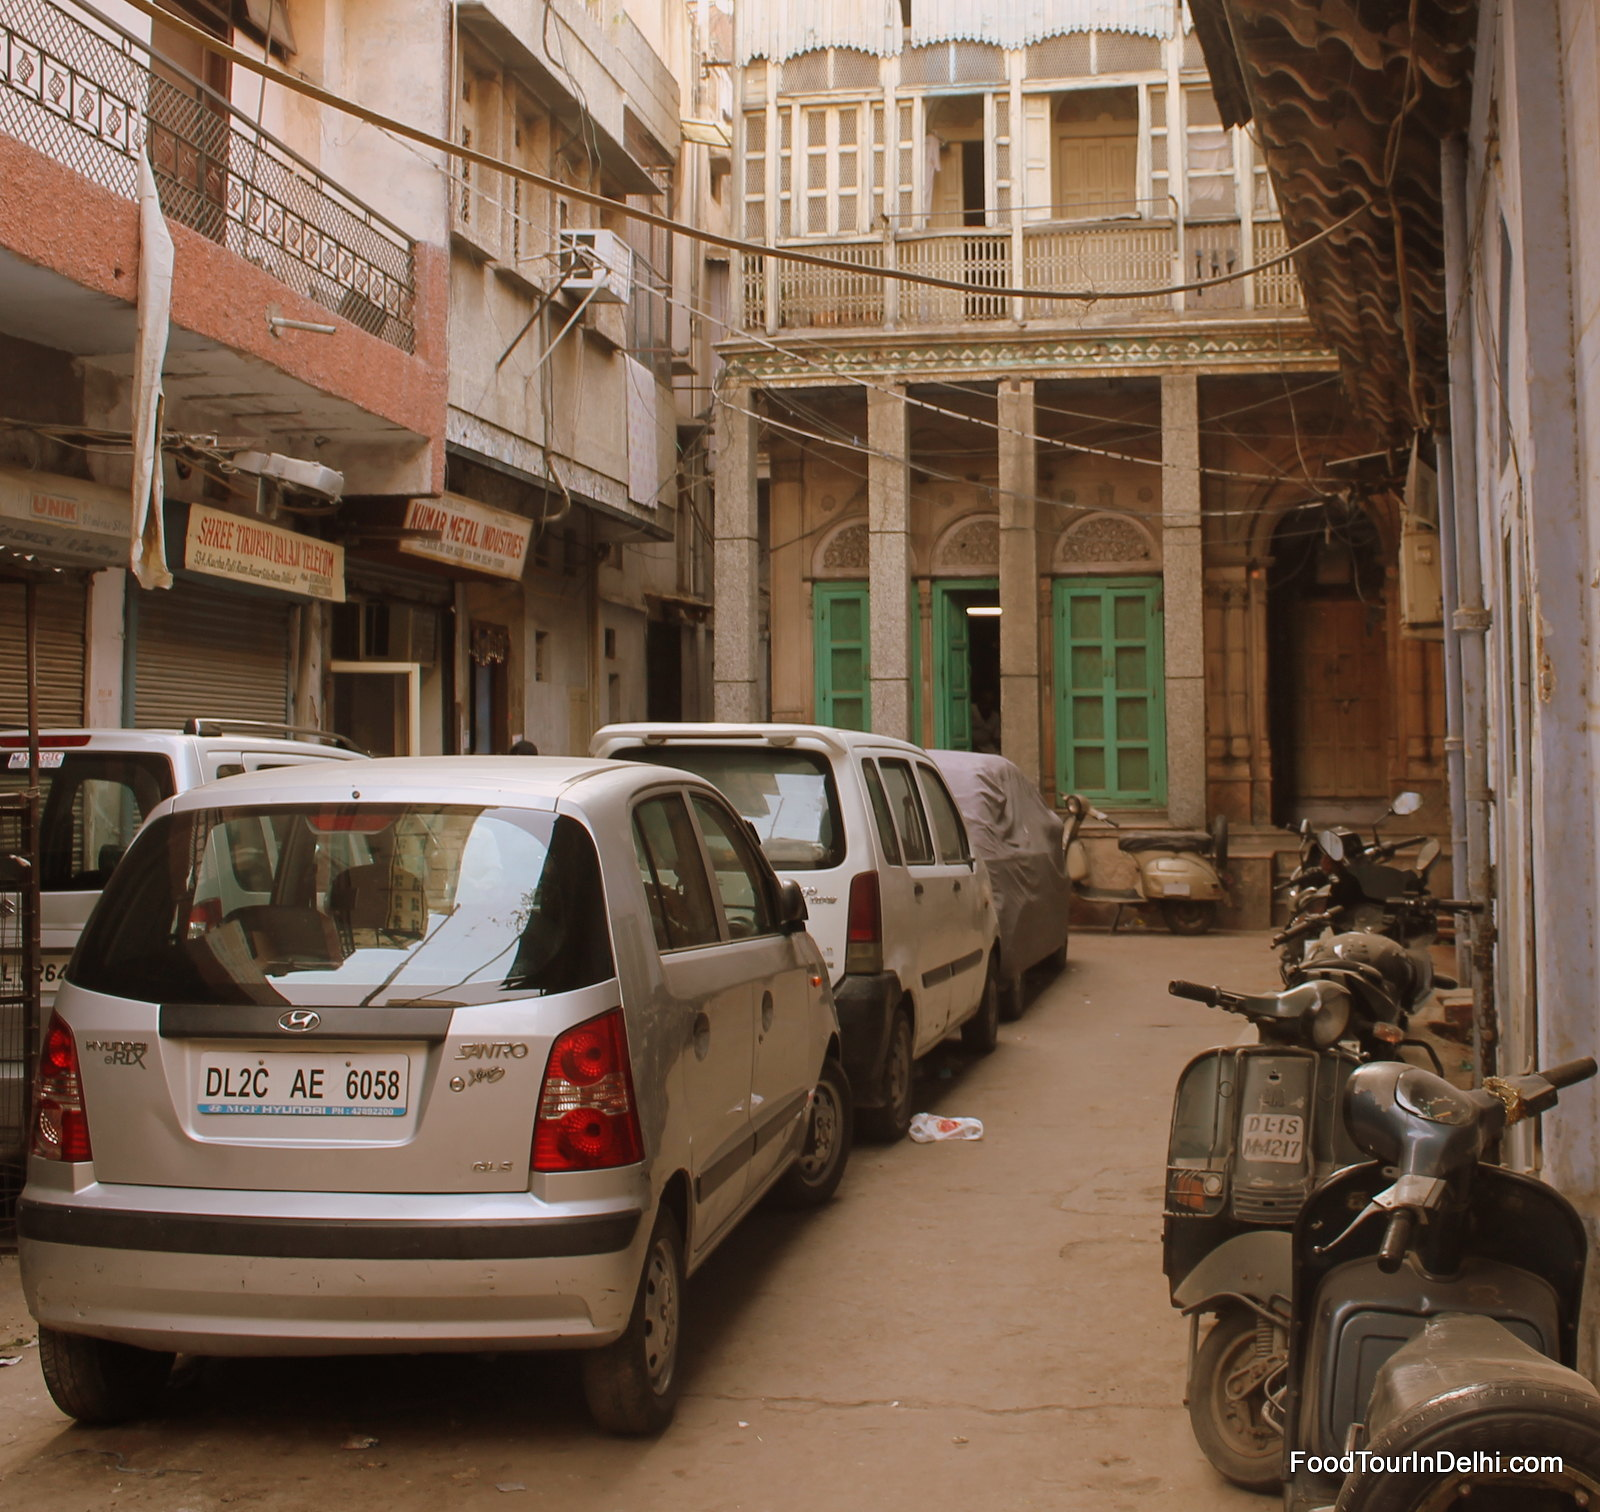 Exploring streets of Old Delhi